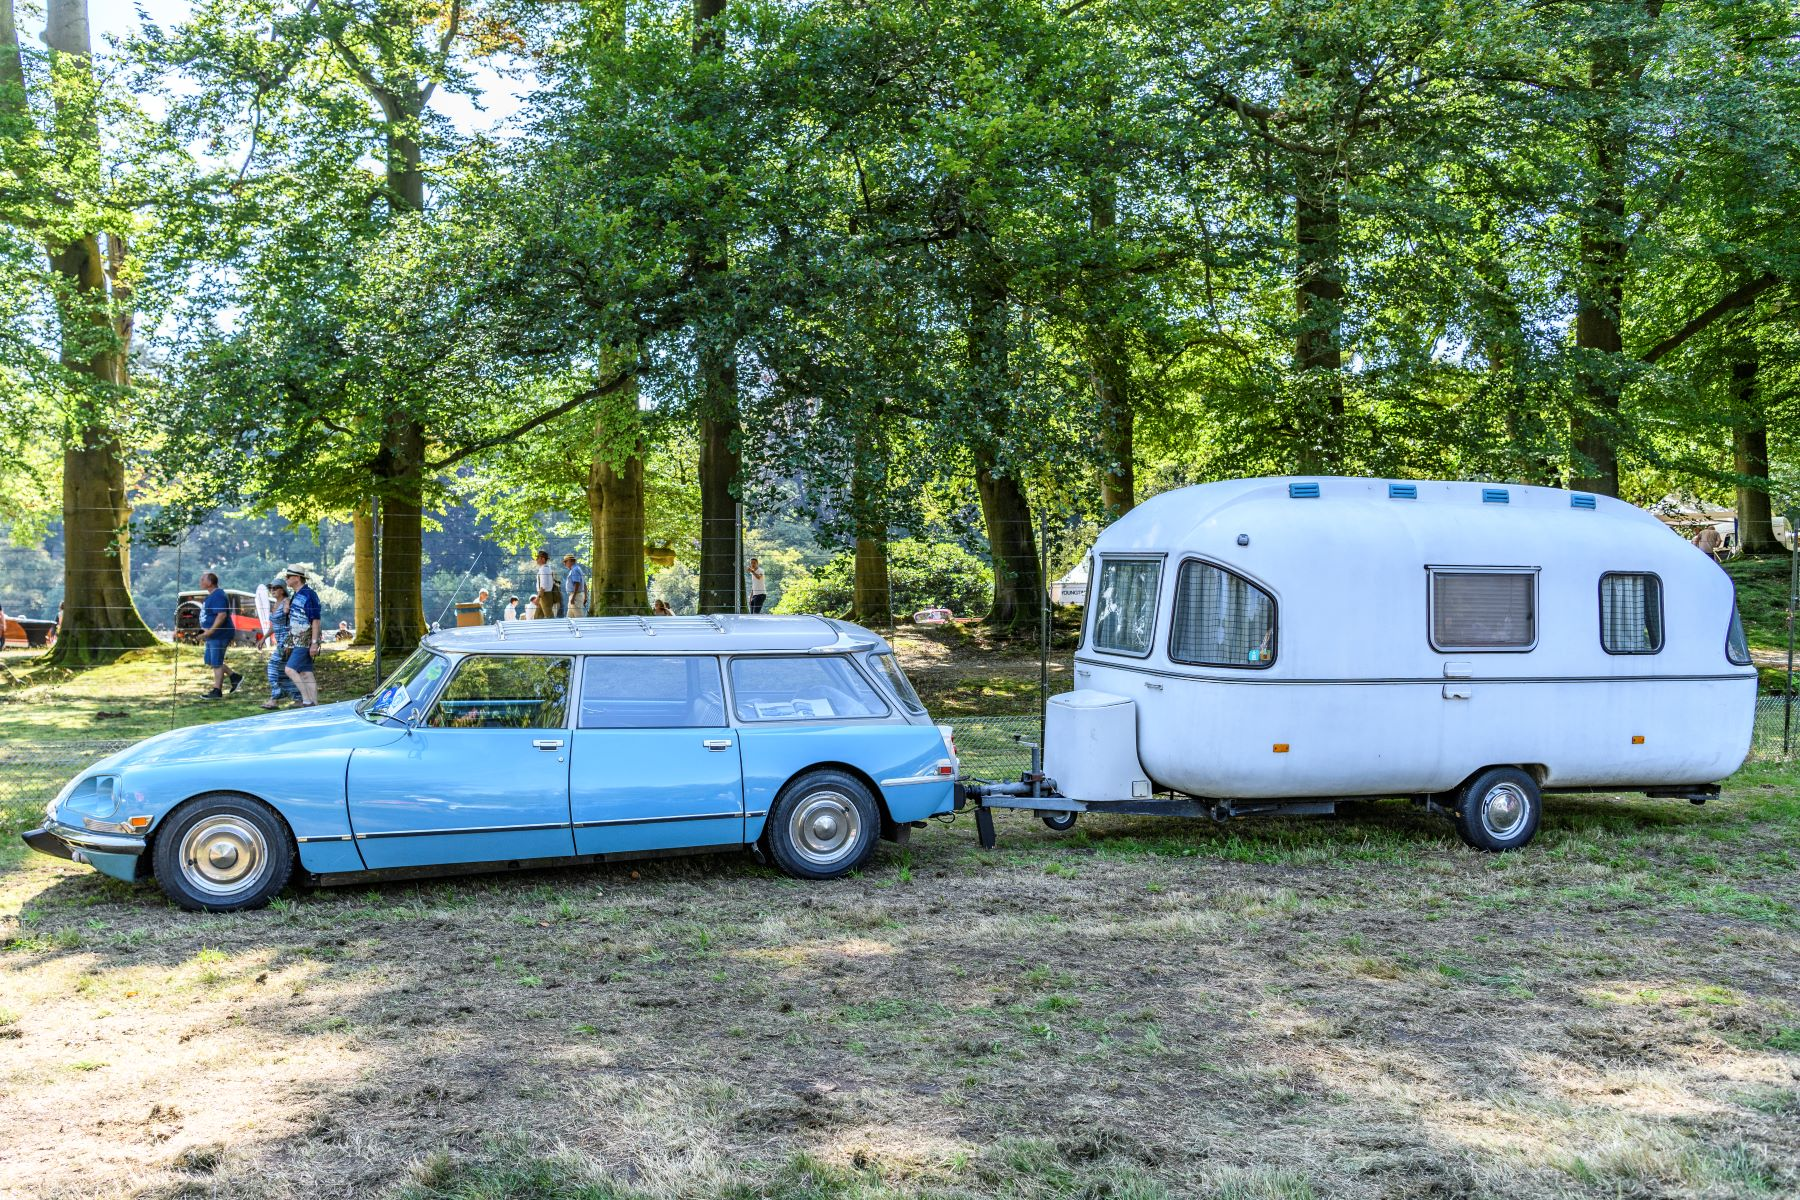 A station wagon towing an RV camper in a forest campground